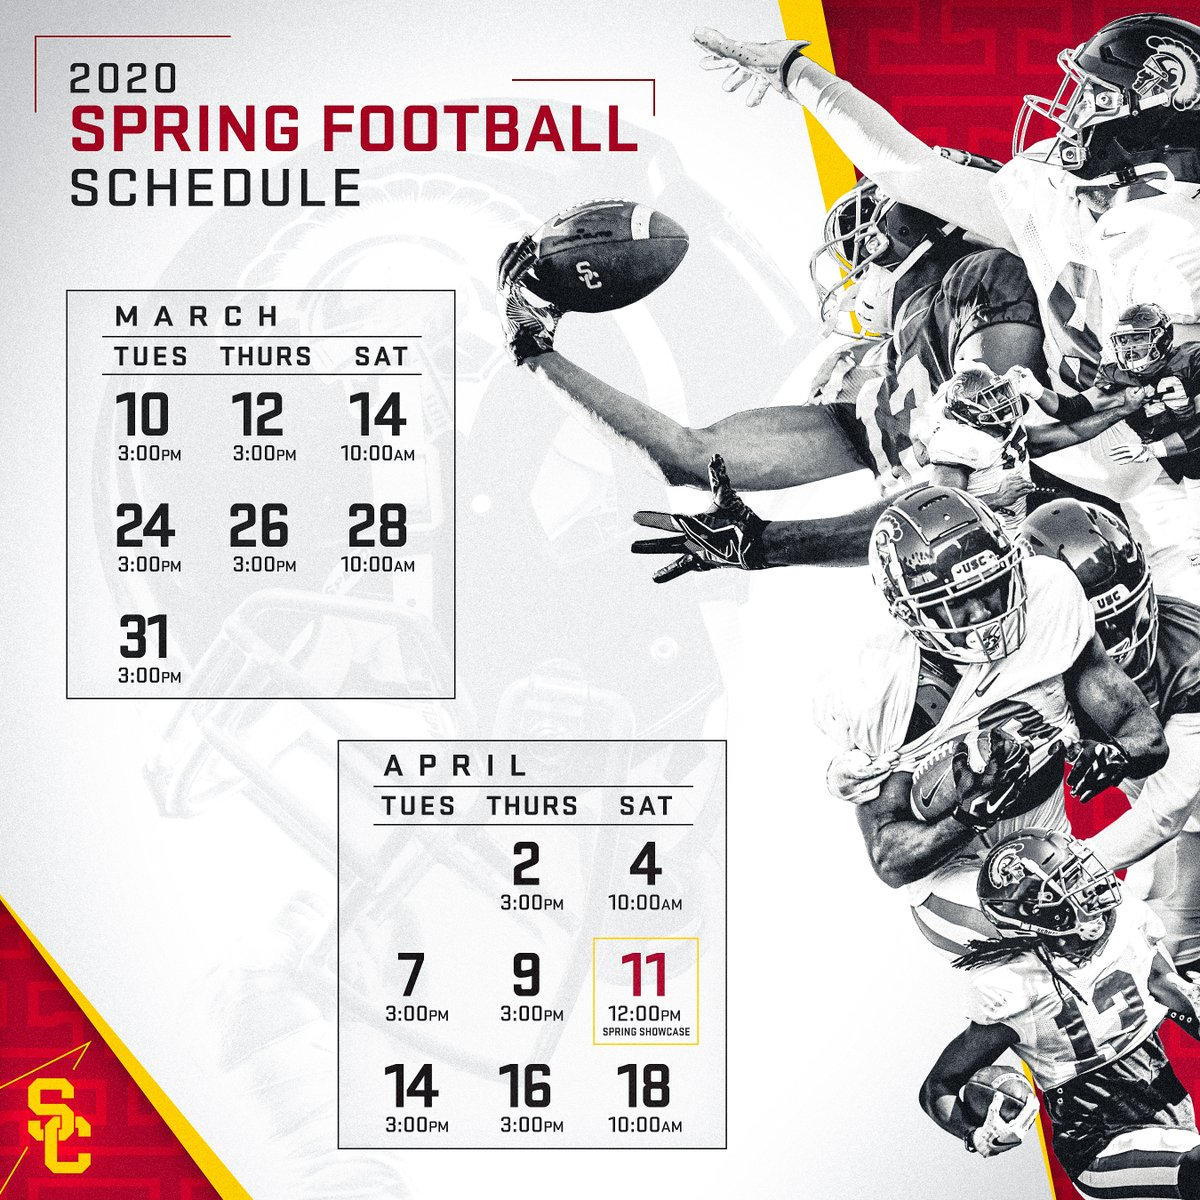 Spring SZN is almost here‼️ Lock these dates in 👀✌️  #TrojanMade